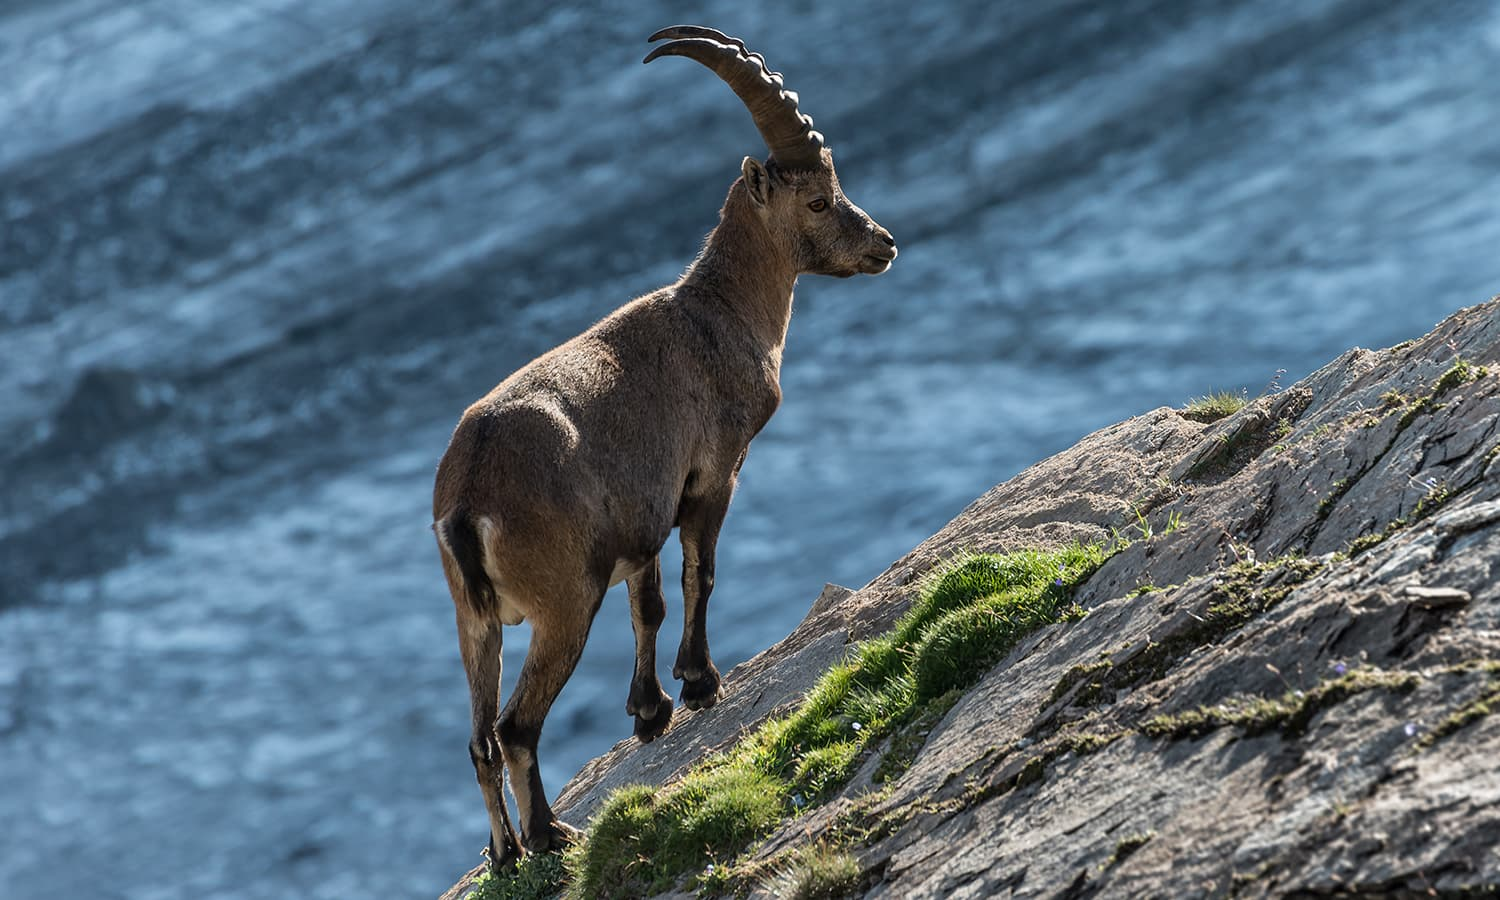 Third place: the Alpine ibex (Capra ibex), or Steinbock, in an Austrian national park in the Hohe Tauern mountain range. —Photo by Bernd Thaller